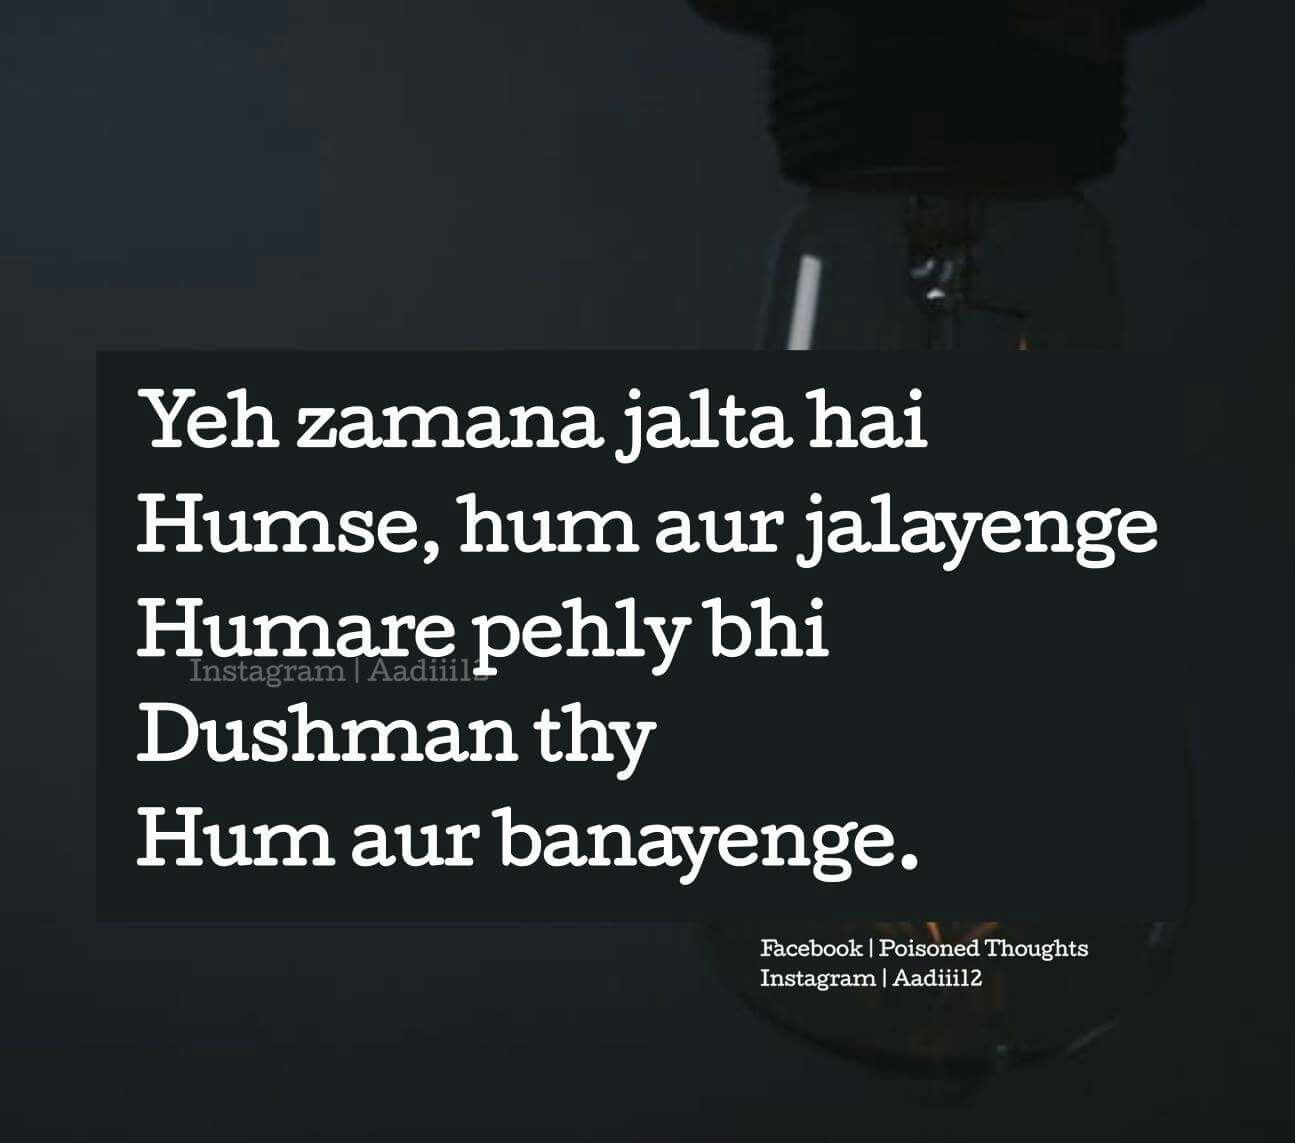 Quotes On Simplicity And Attitude In Hindi: Jab Tak Apne Se Jalne Wala Na Ho Tab Tak Maza Nahi Aata